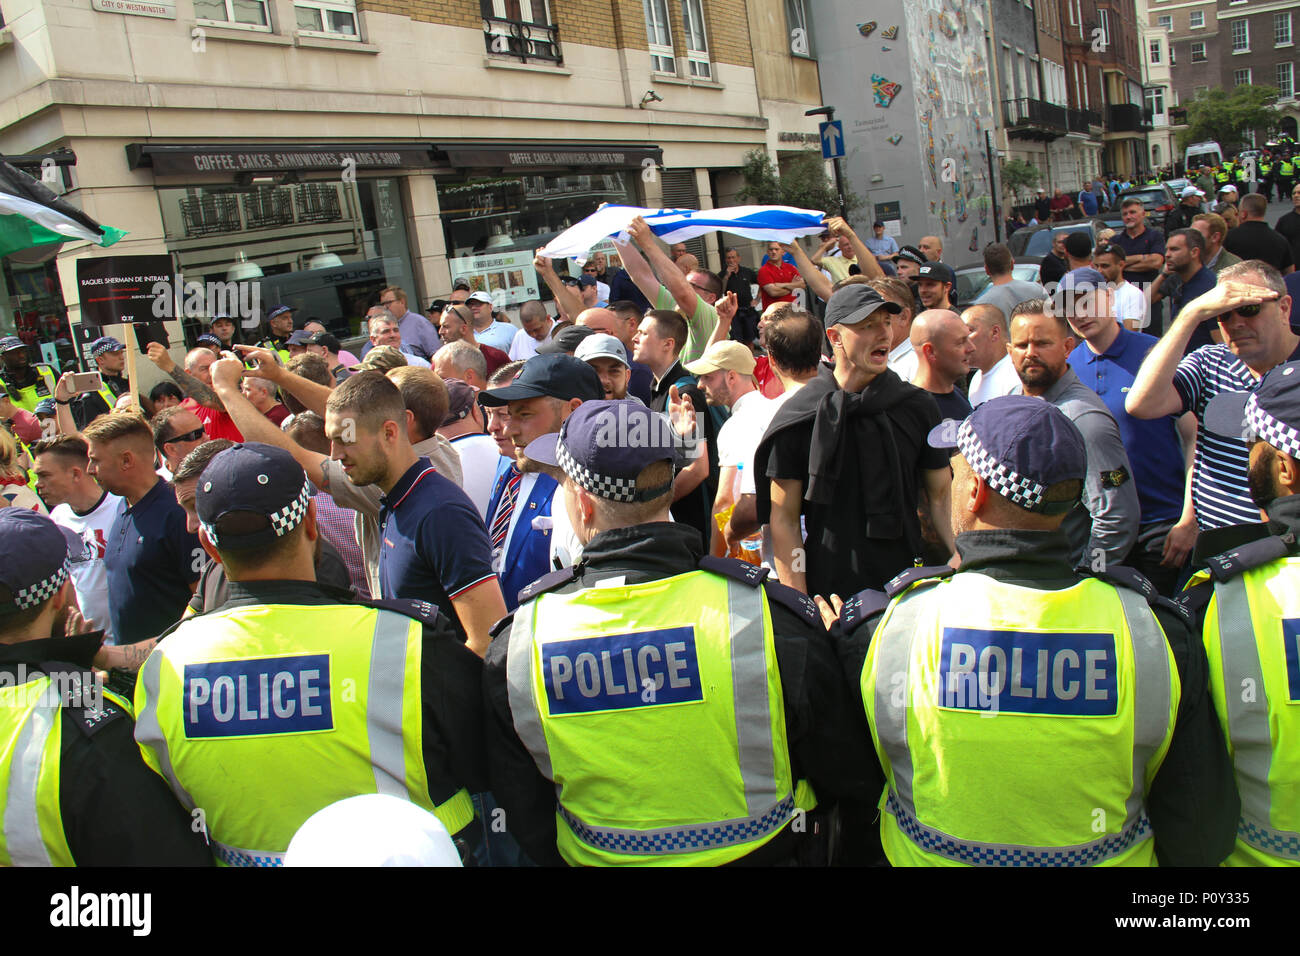 London, UK - 10 June 2018: Free Tommy Robinson supporter held a counter-demonstration as the Al Quds Day demonstration took place outside the Saudi Arabia Embassy for Al Quds Day on 10 June 2018. There was a heavy presence of uniformed police that separated the two groups. The annual event held on the last Friday of Ramadan that was initiated in 1979 to express support for the Palestinians and oppose Zionism and Israel. Credit: David Mbiyu/Alamy Live News Stock Photo